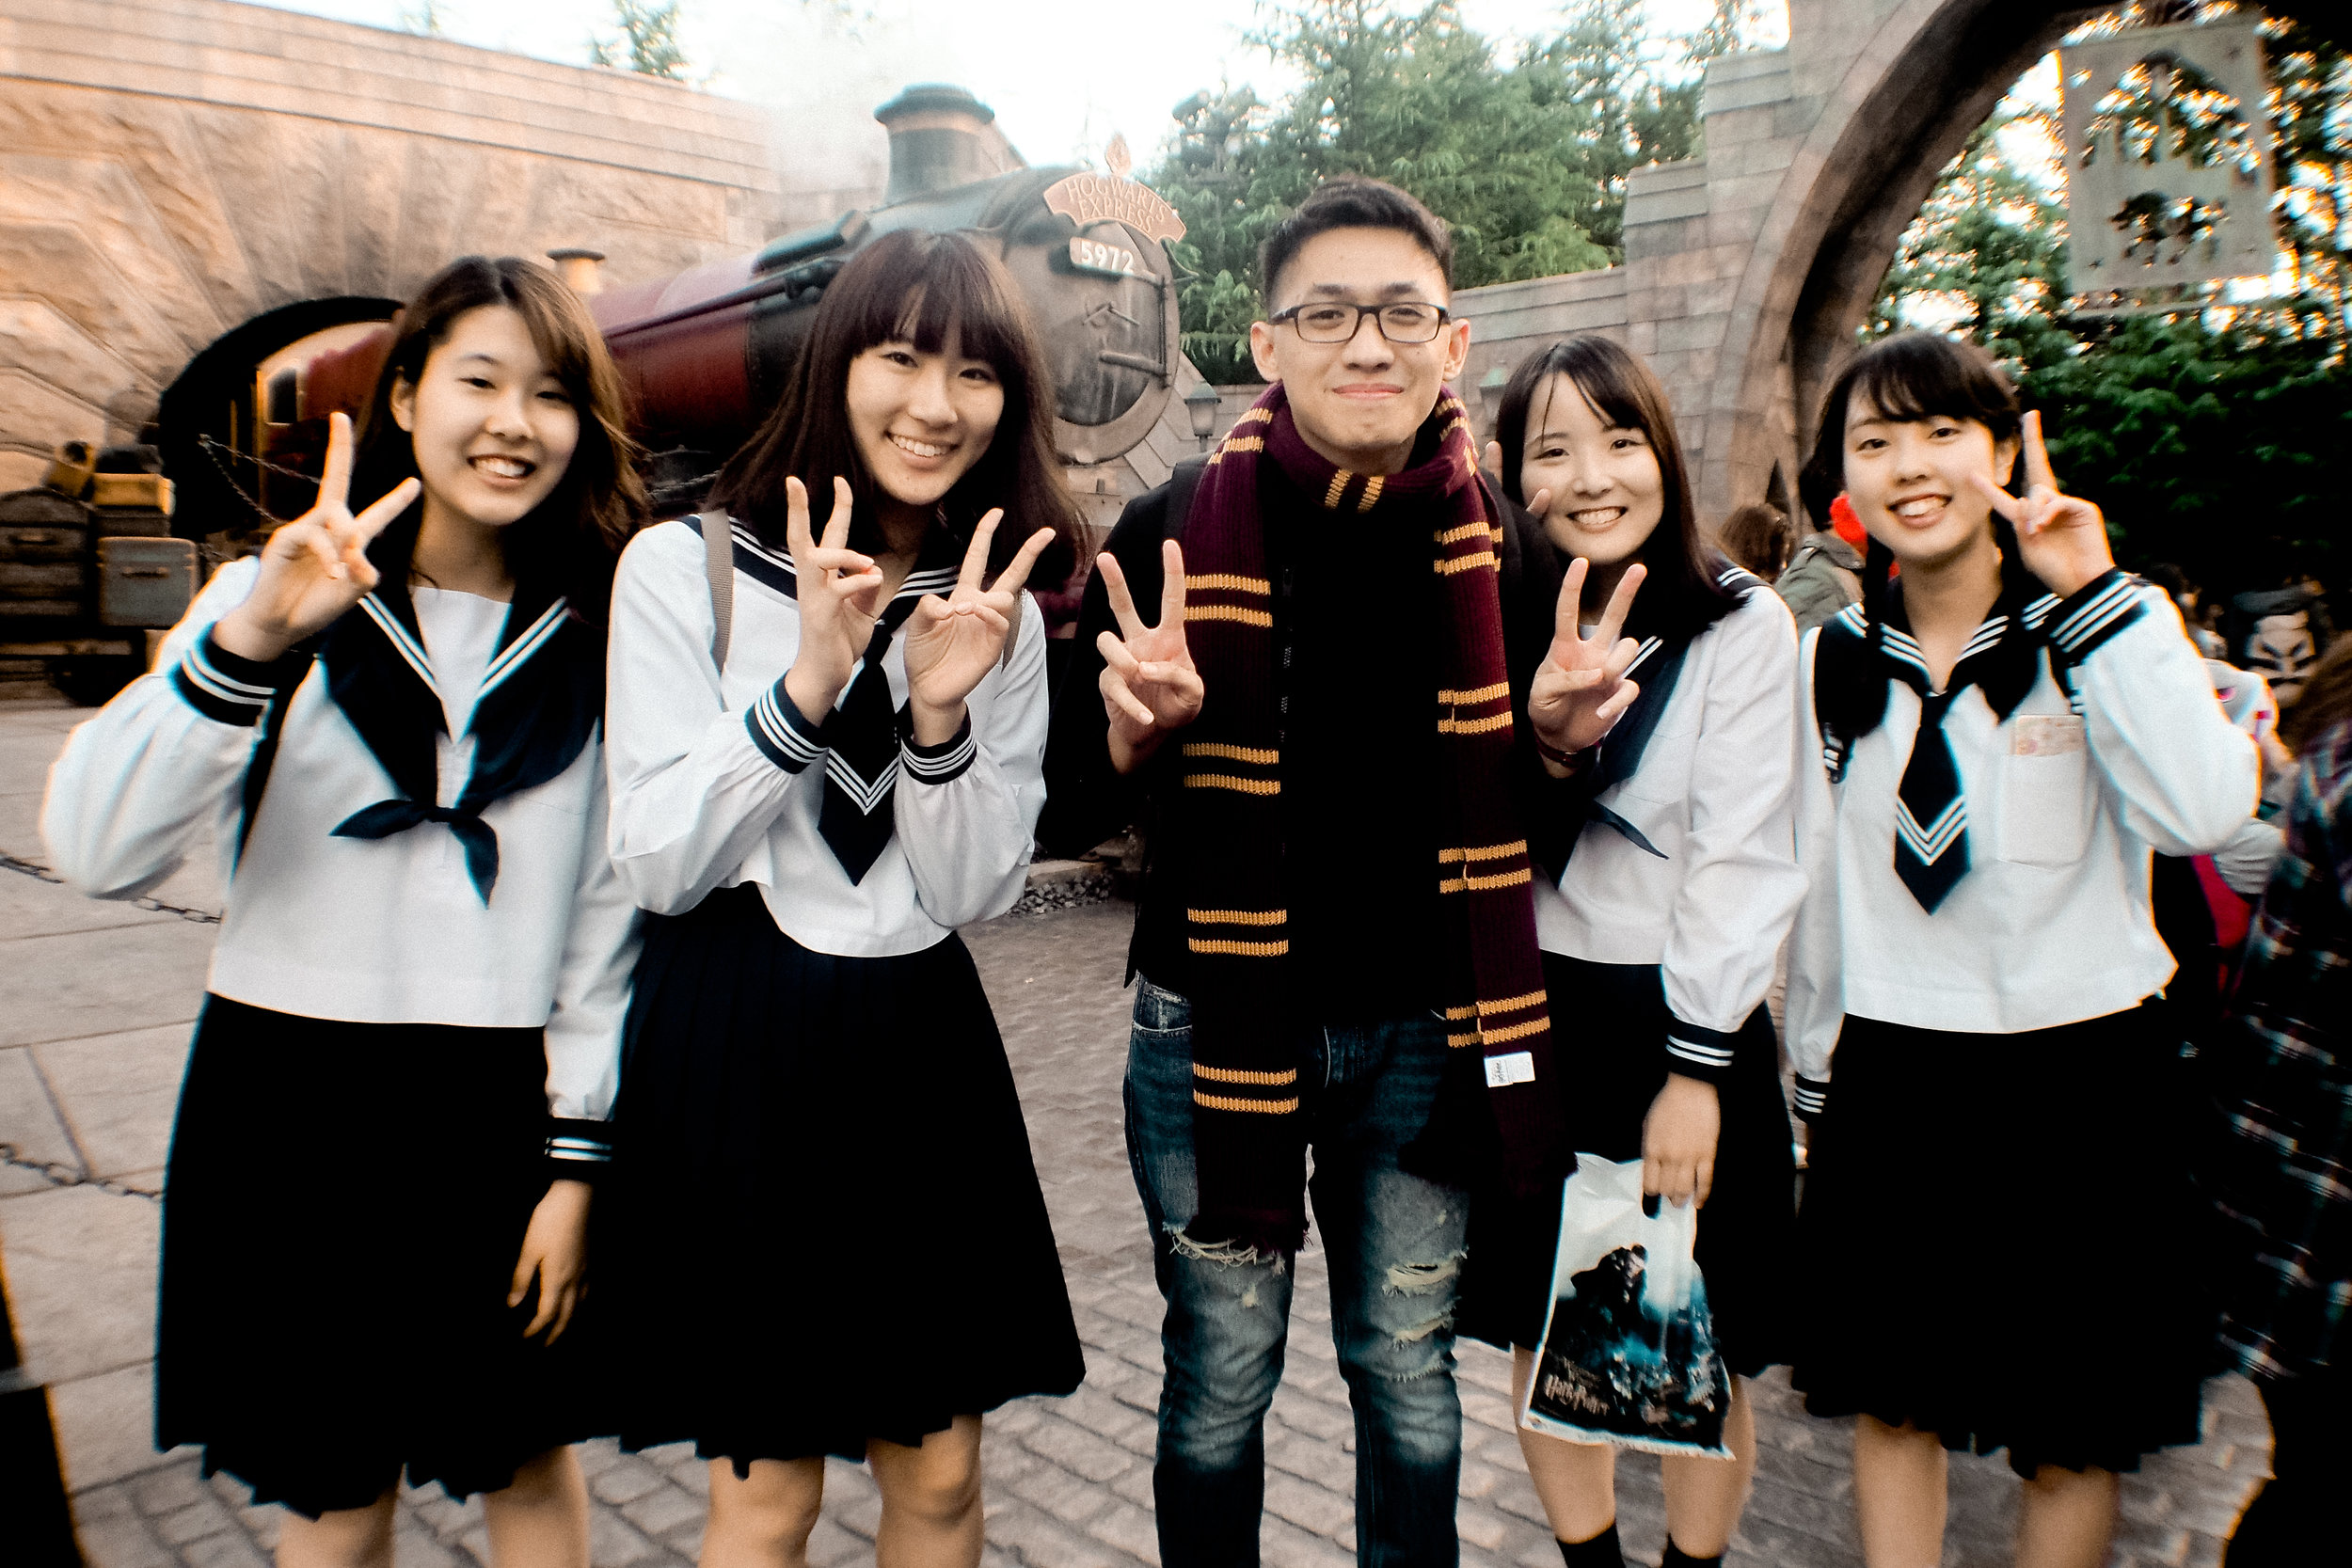 Met some kawaii Japanese high school girls on our way out of the Wizarding World.